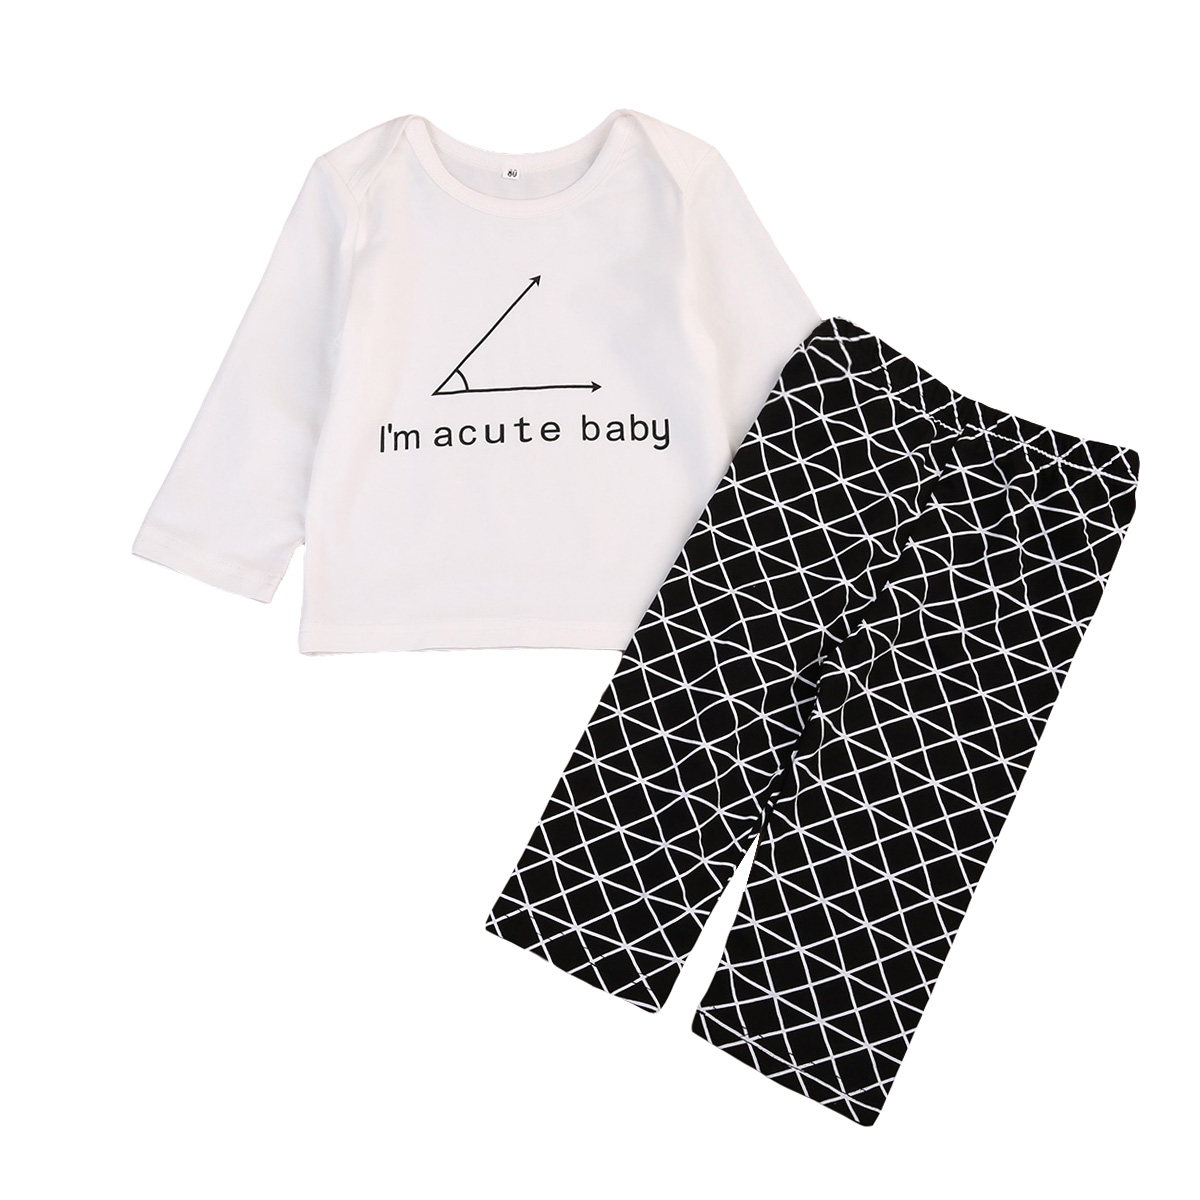 Cute Newborn Baby Boy Clothes Set 2017 New Long Sleeve Pullover T-shirt Tops+Geometric Pants 2pcs Outfits Clothes Set 2pcs newborn baby boys clothes set gold letter mamas boy outfit t shirt pants kids autumn long sleeve tops baby boy clothes set